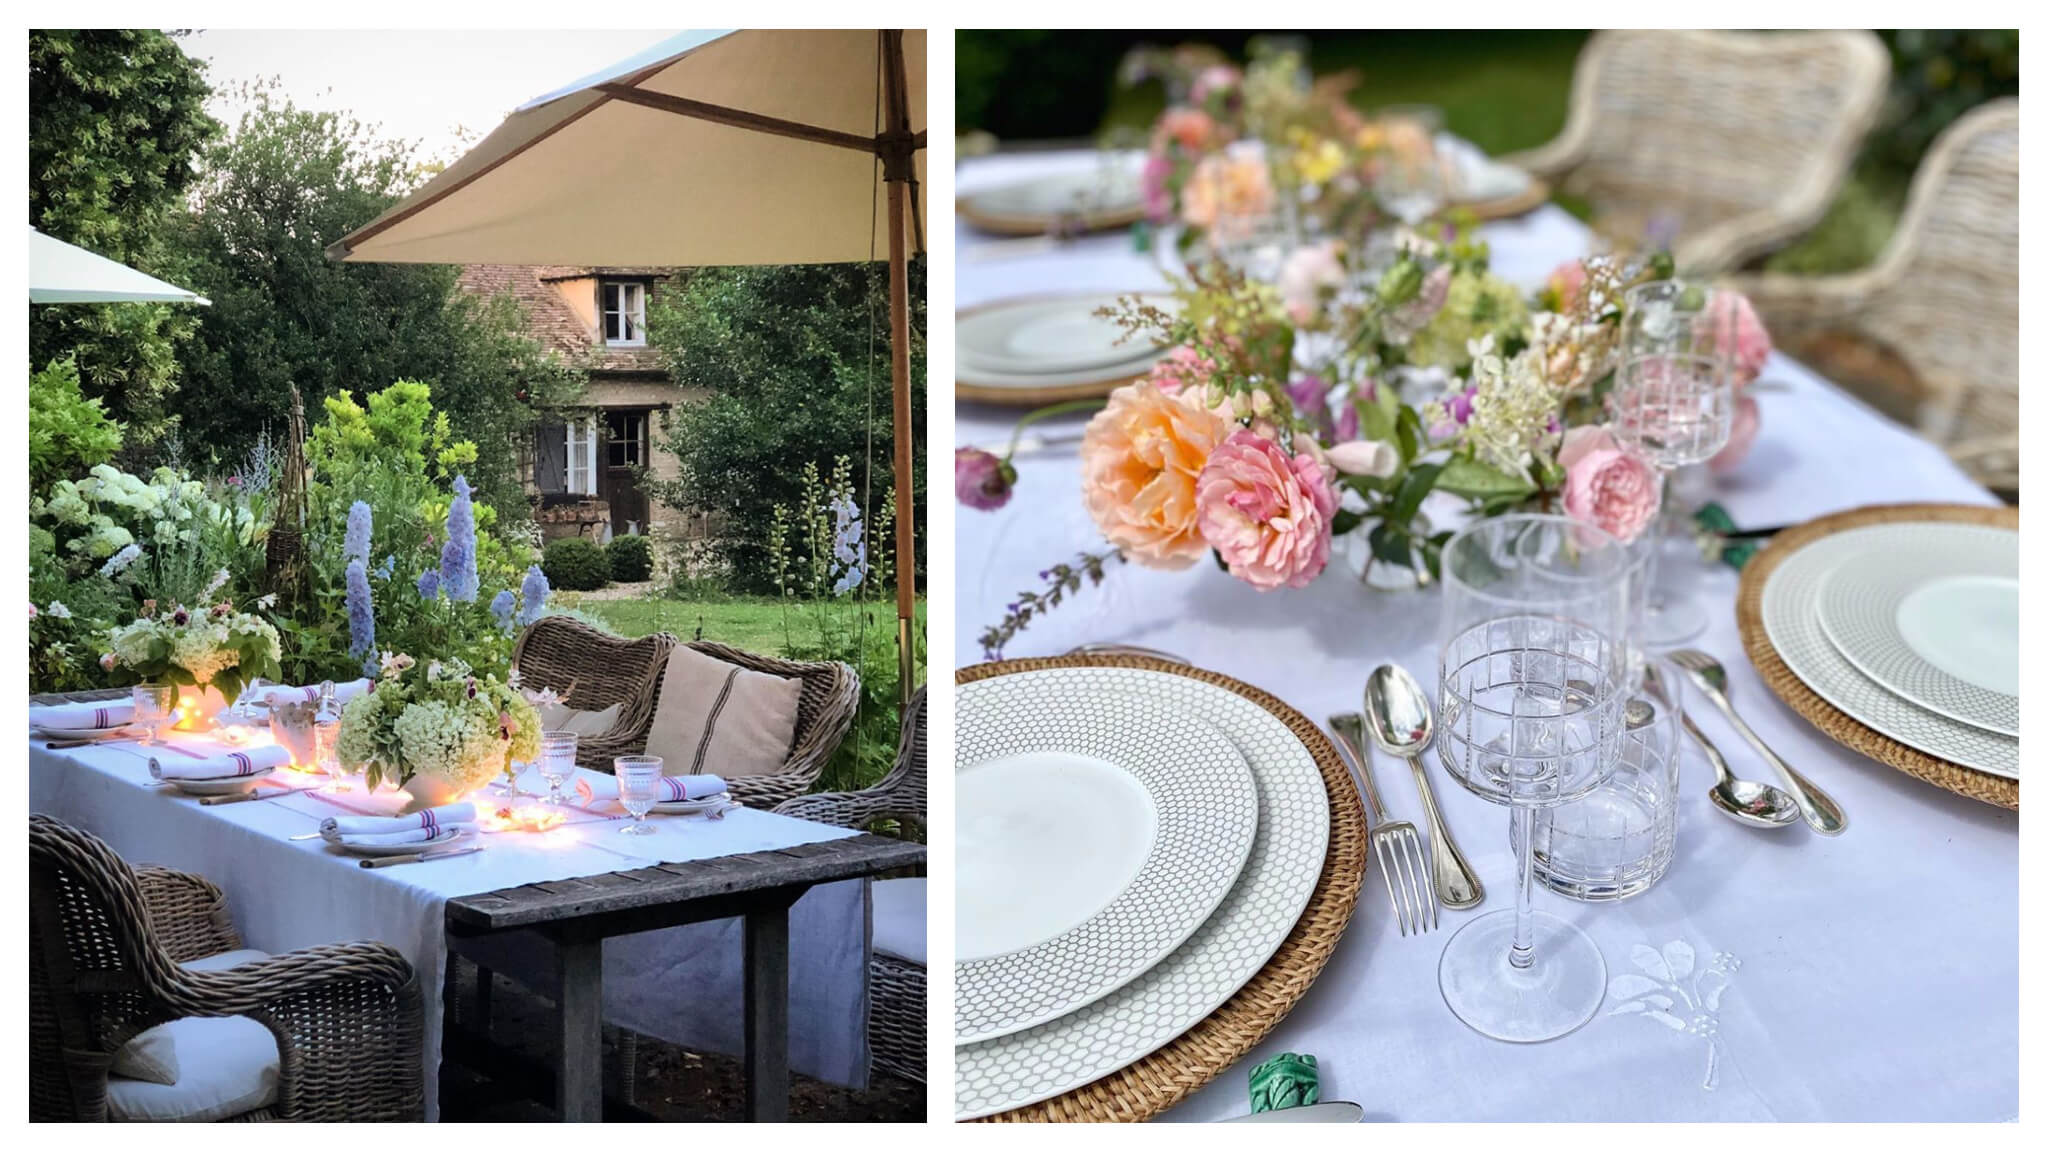 Left, a table set up for dinner in the garden in Normandy. Right, a beautifully laid table ready for dinner in a garden in Normandy.